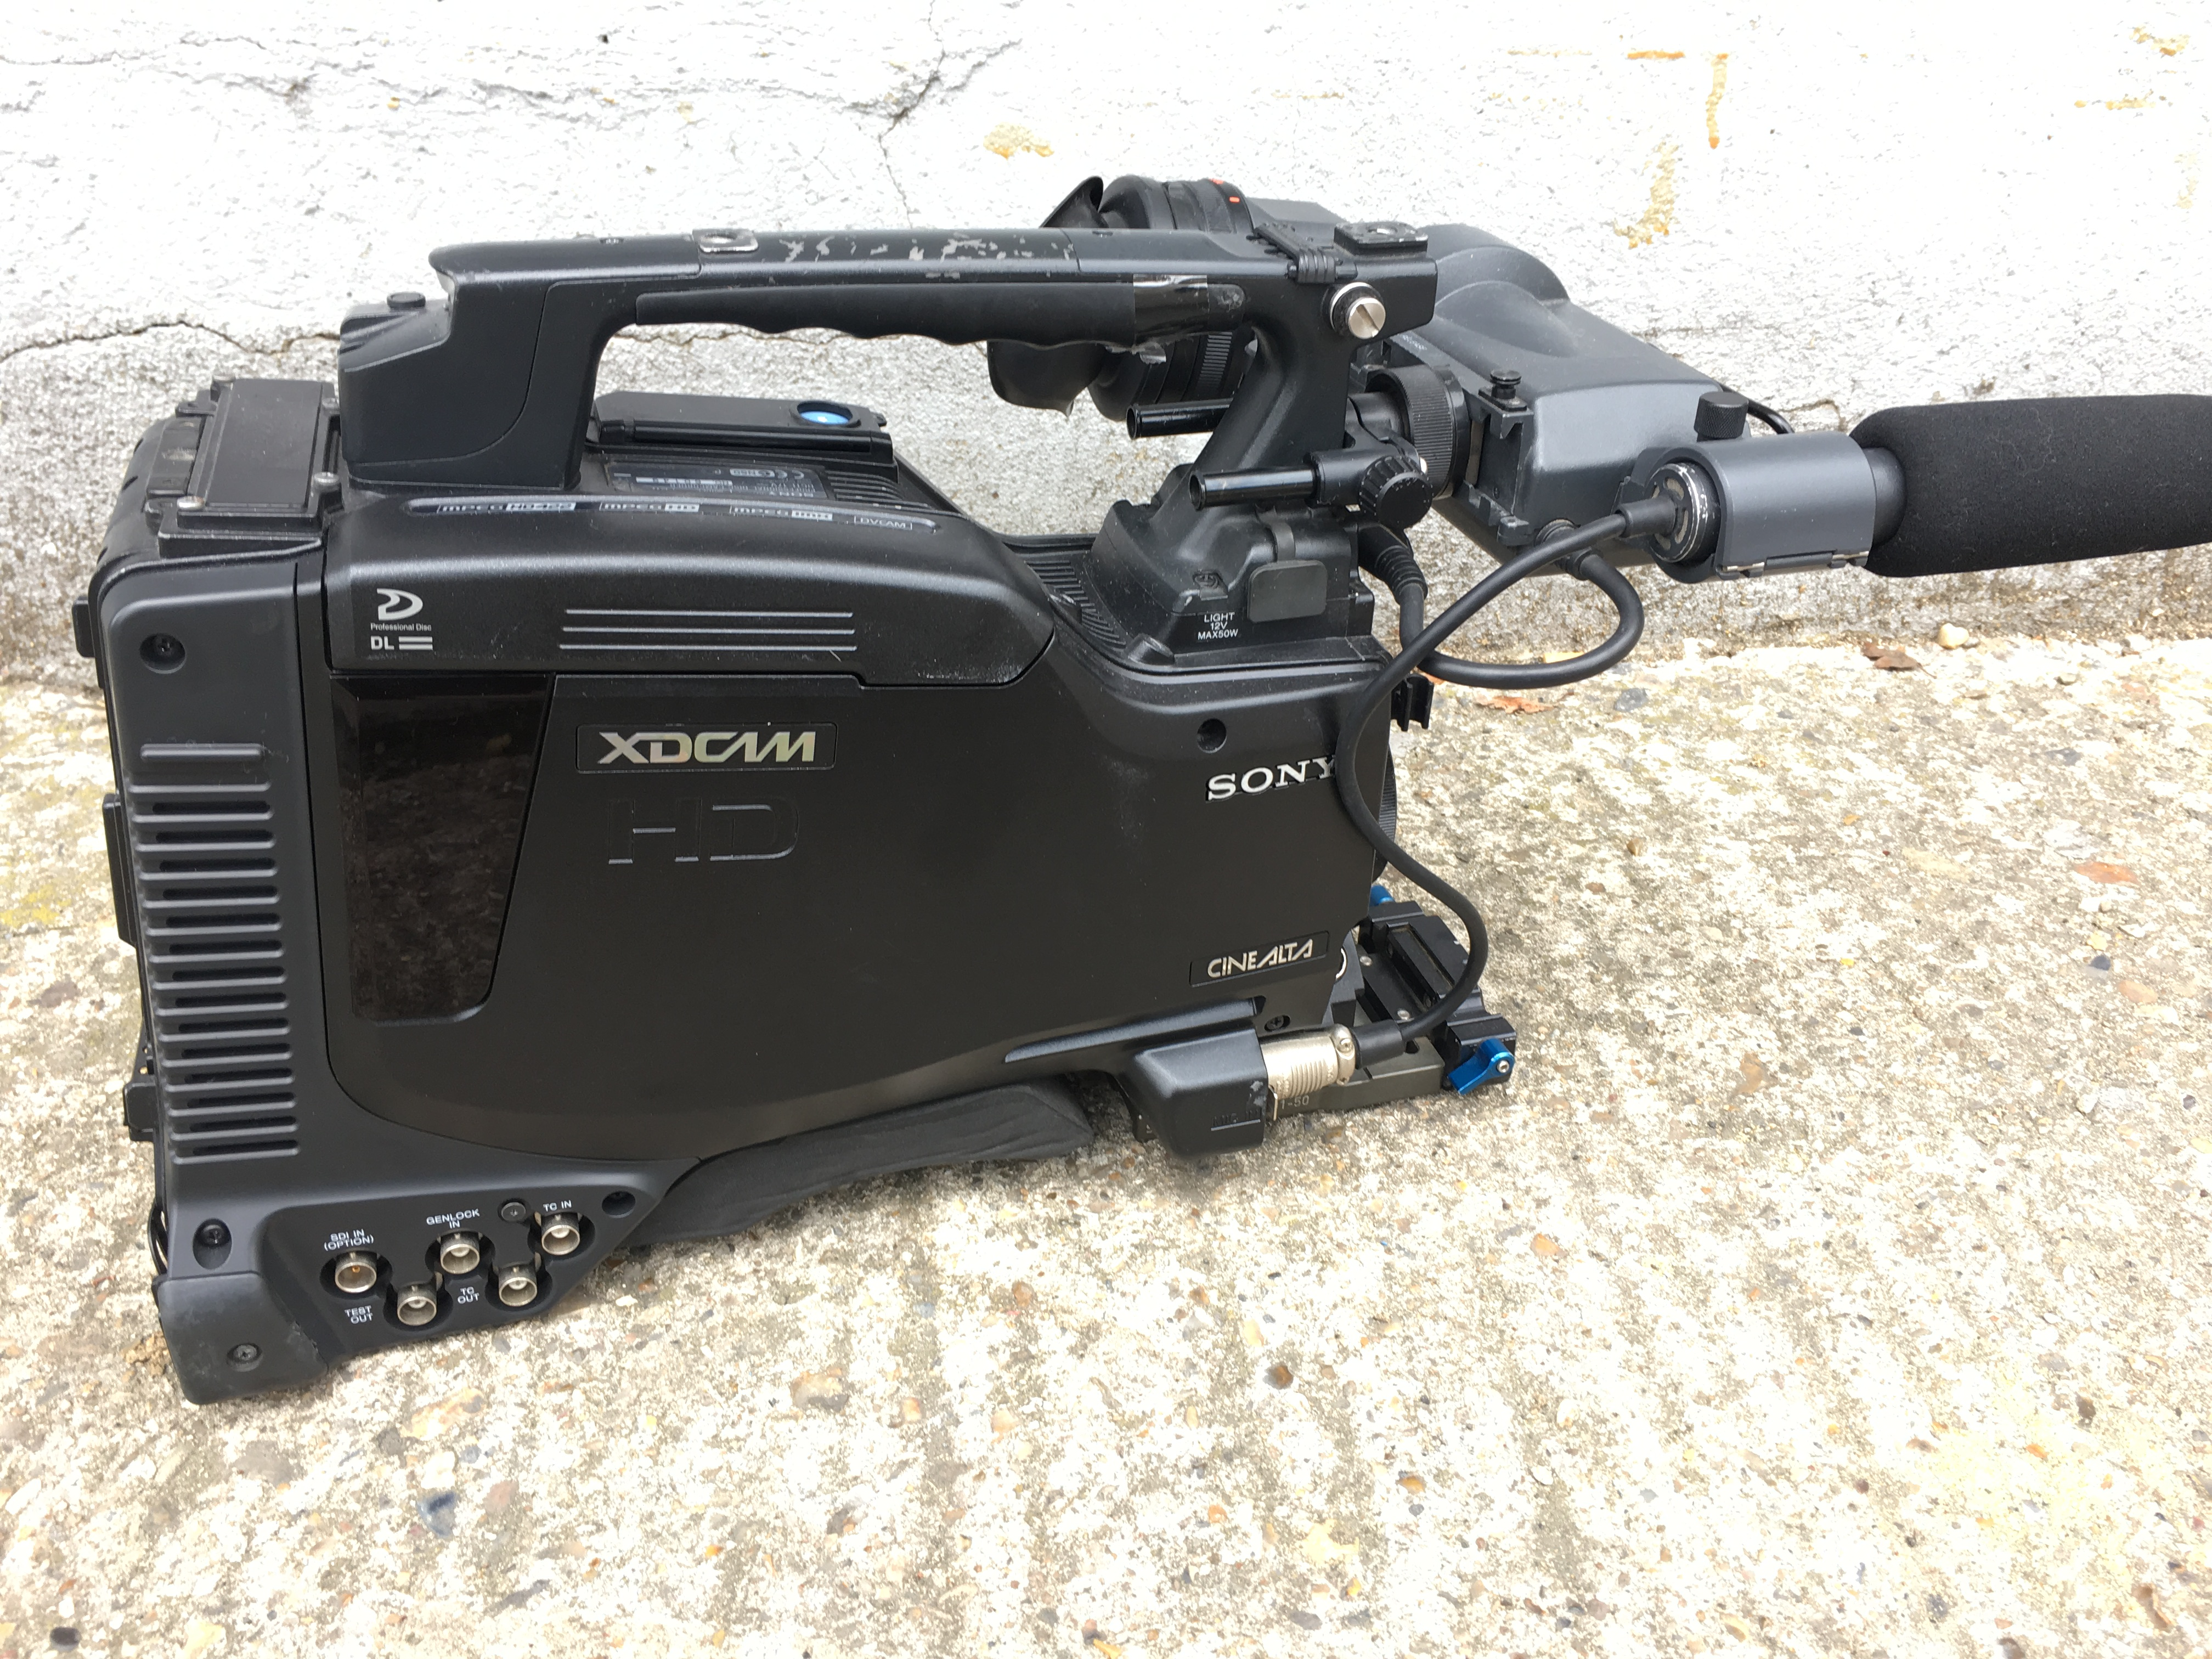 Sony PDW F800 camera PDWF800 good condition - Image #1